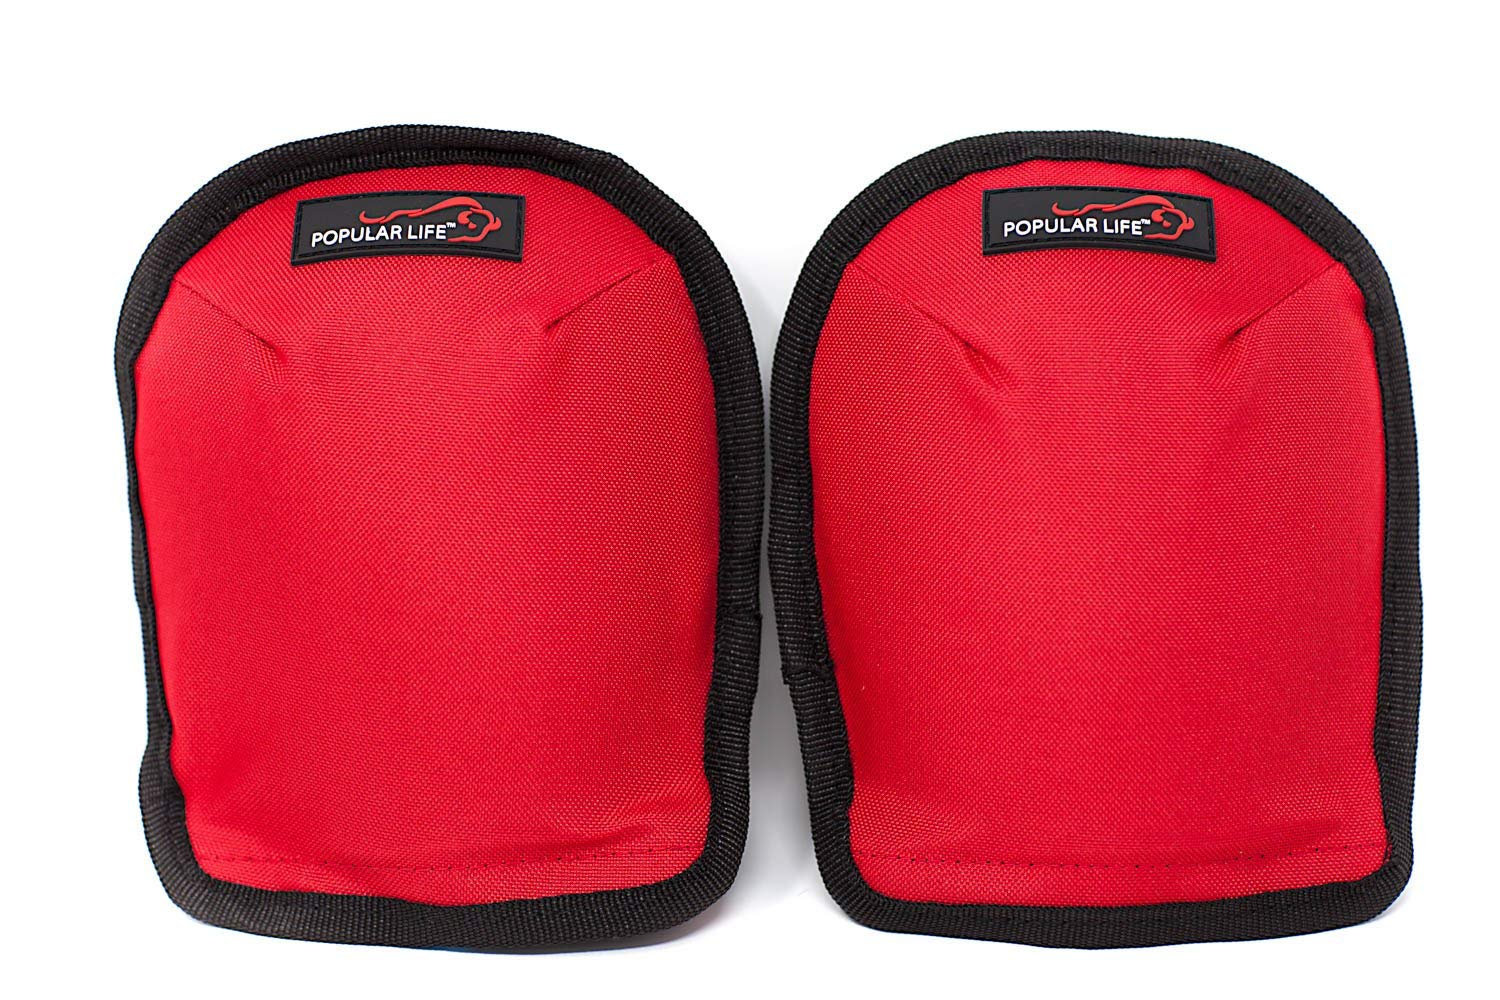 POPULAR LIFE Original Washable Knee Pads   Home & Gardening Knee Pads with Removeable and Replaceable Foam Pad Insert, Easy Fit with Adjustable Hook and Loop Closure Straps